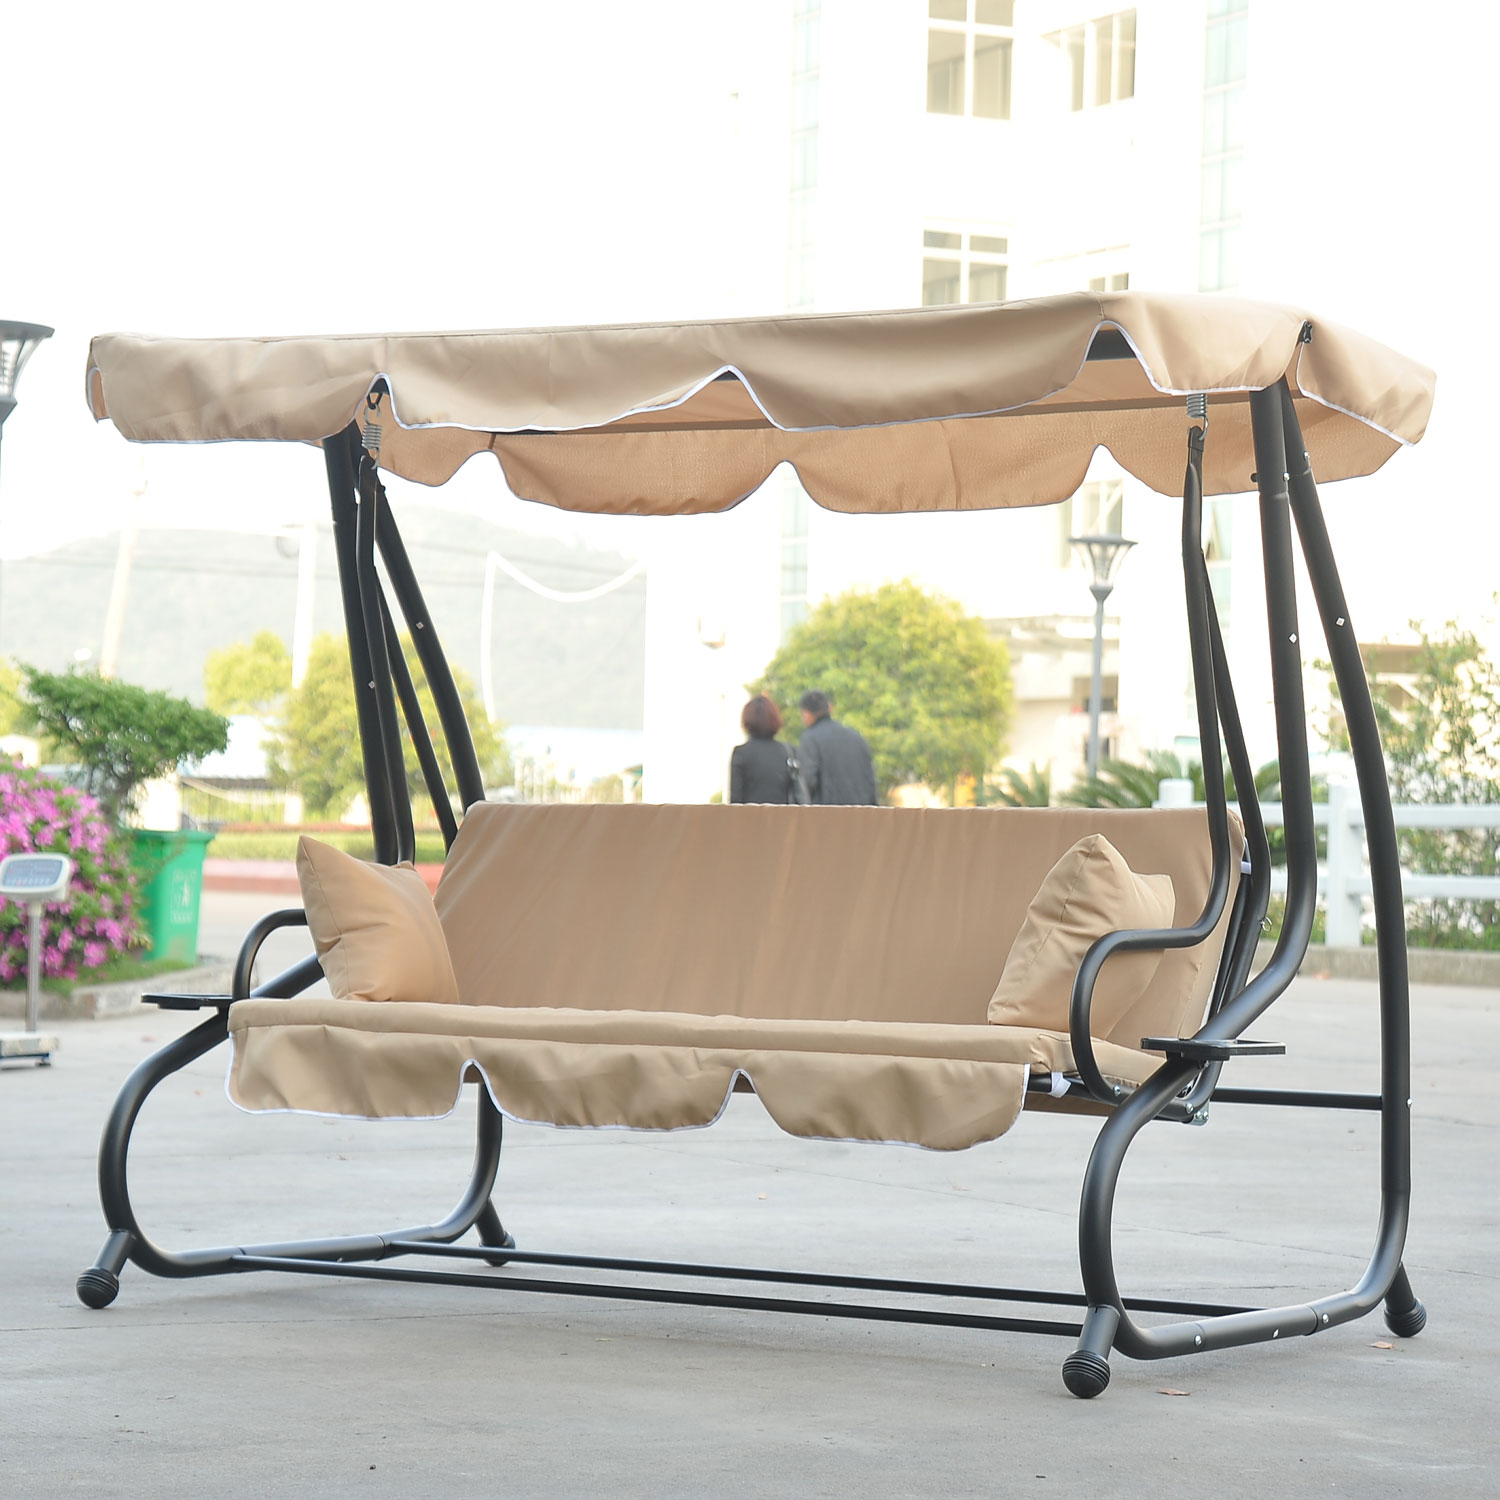 sc 1 st  Walmart & Outsunny Covered Porch Swing / Bed with Frame - Sand - Walmart.com